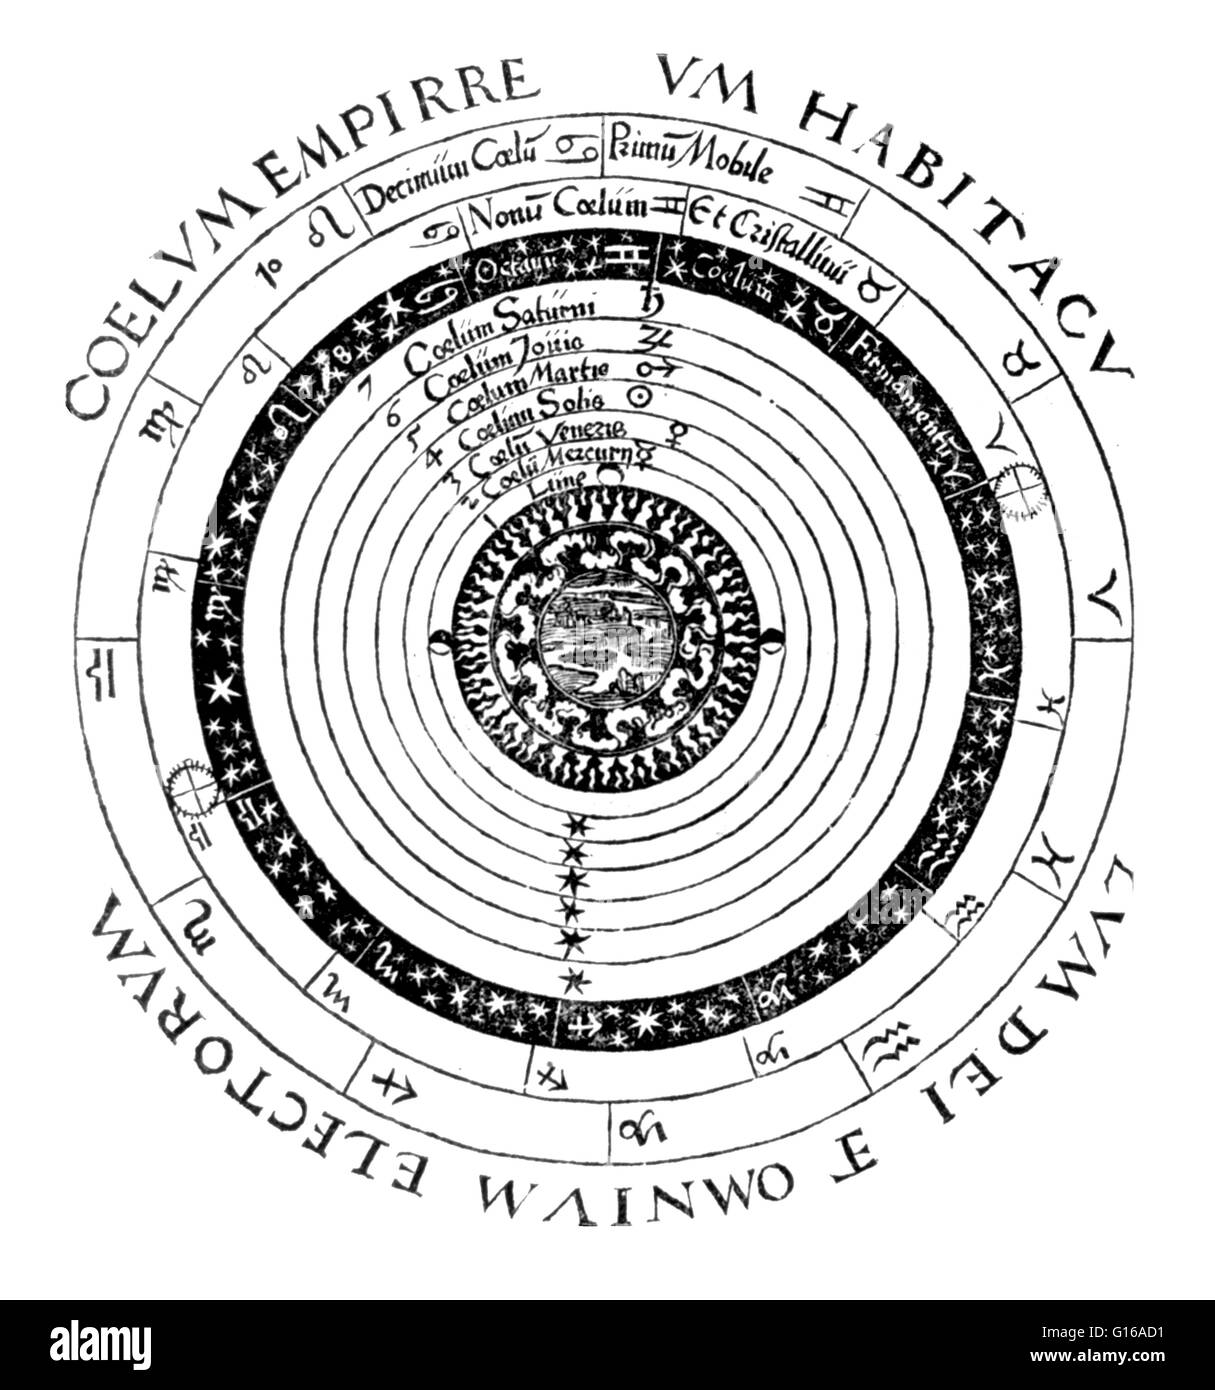 The grafting of Aristotelian theory onto the Christian version of the cosmos, engraving from Peter Apian's Cosmographicus Stock Photo